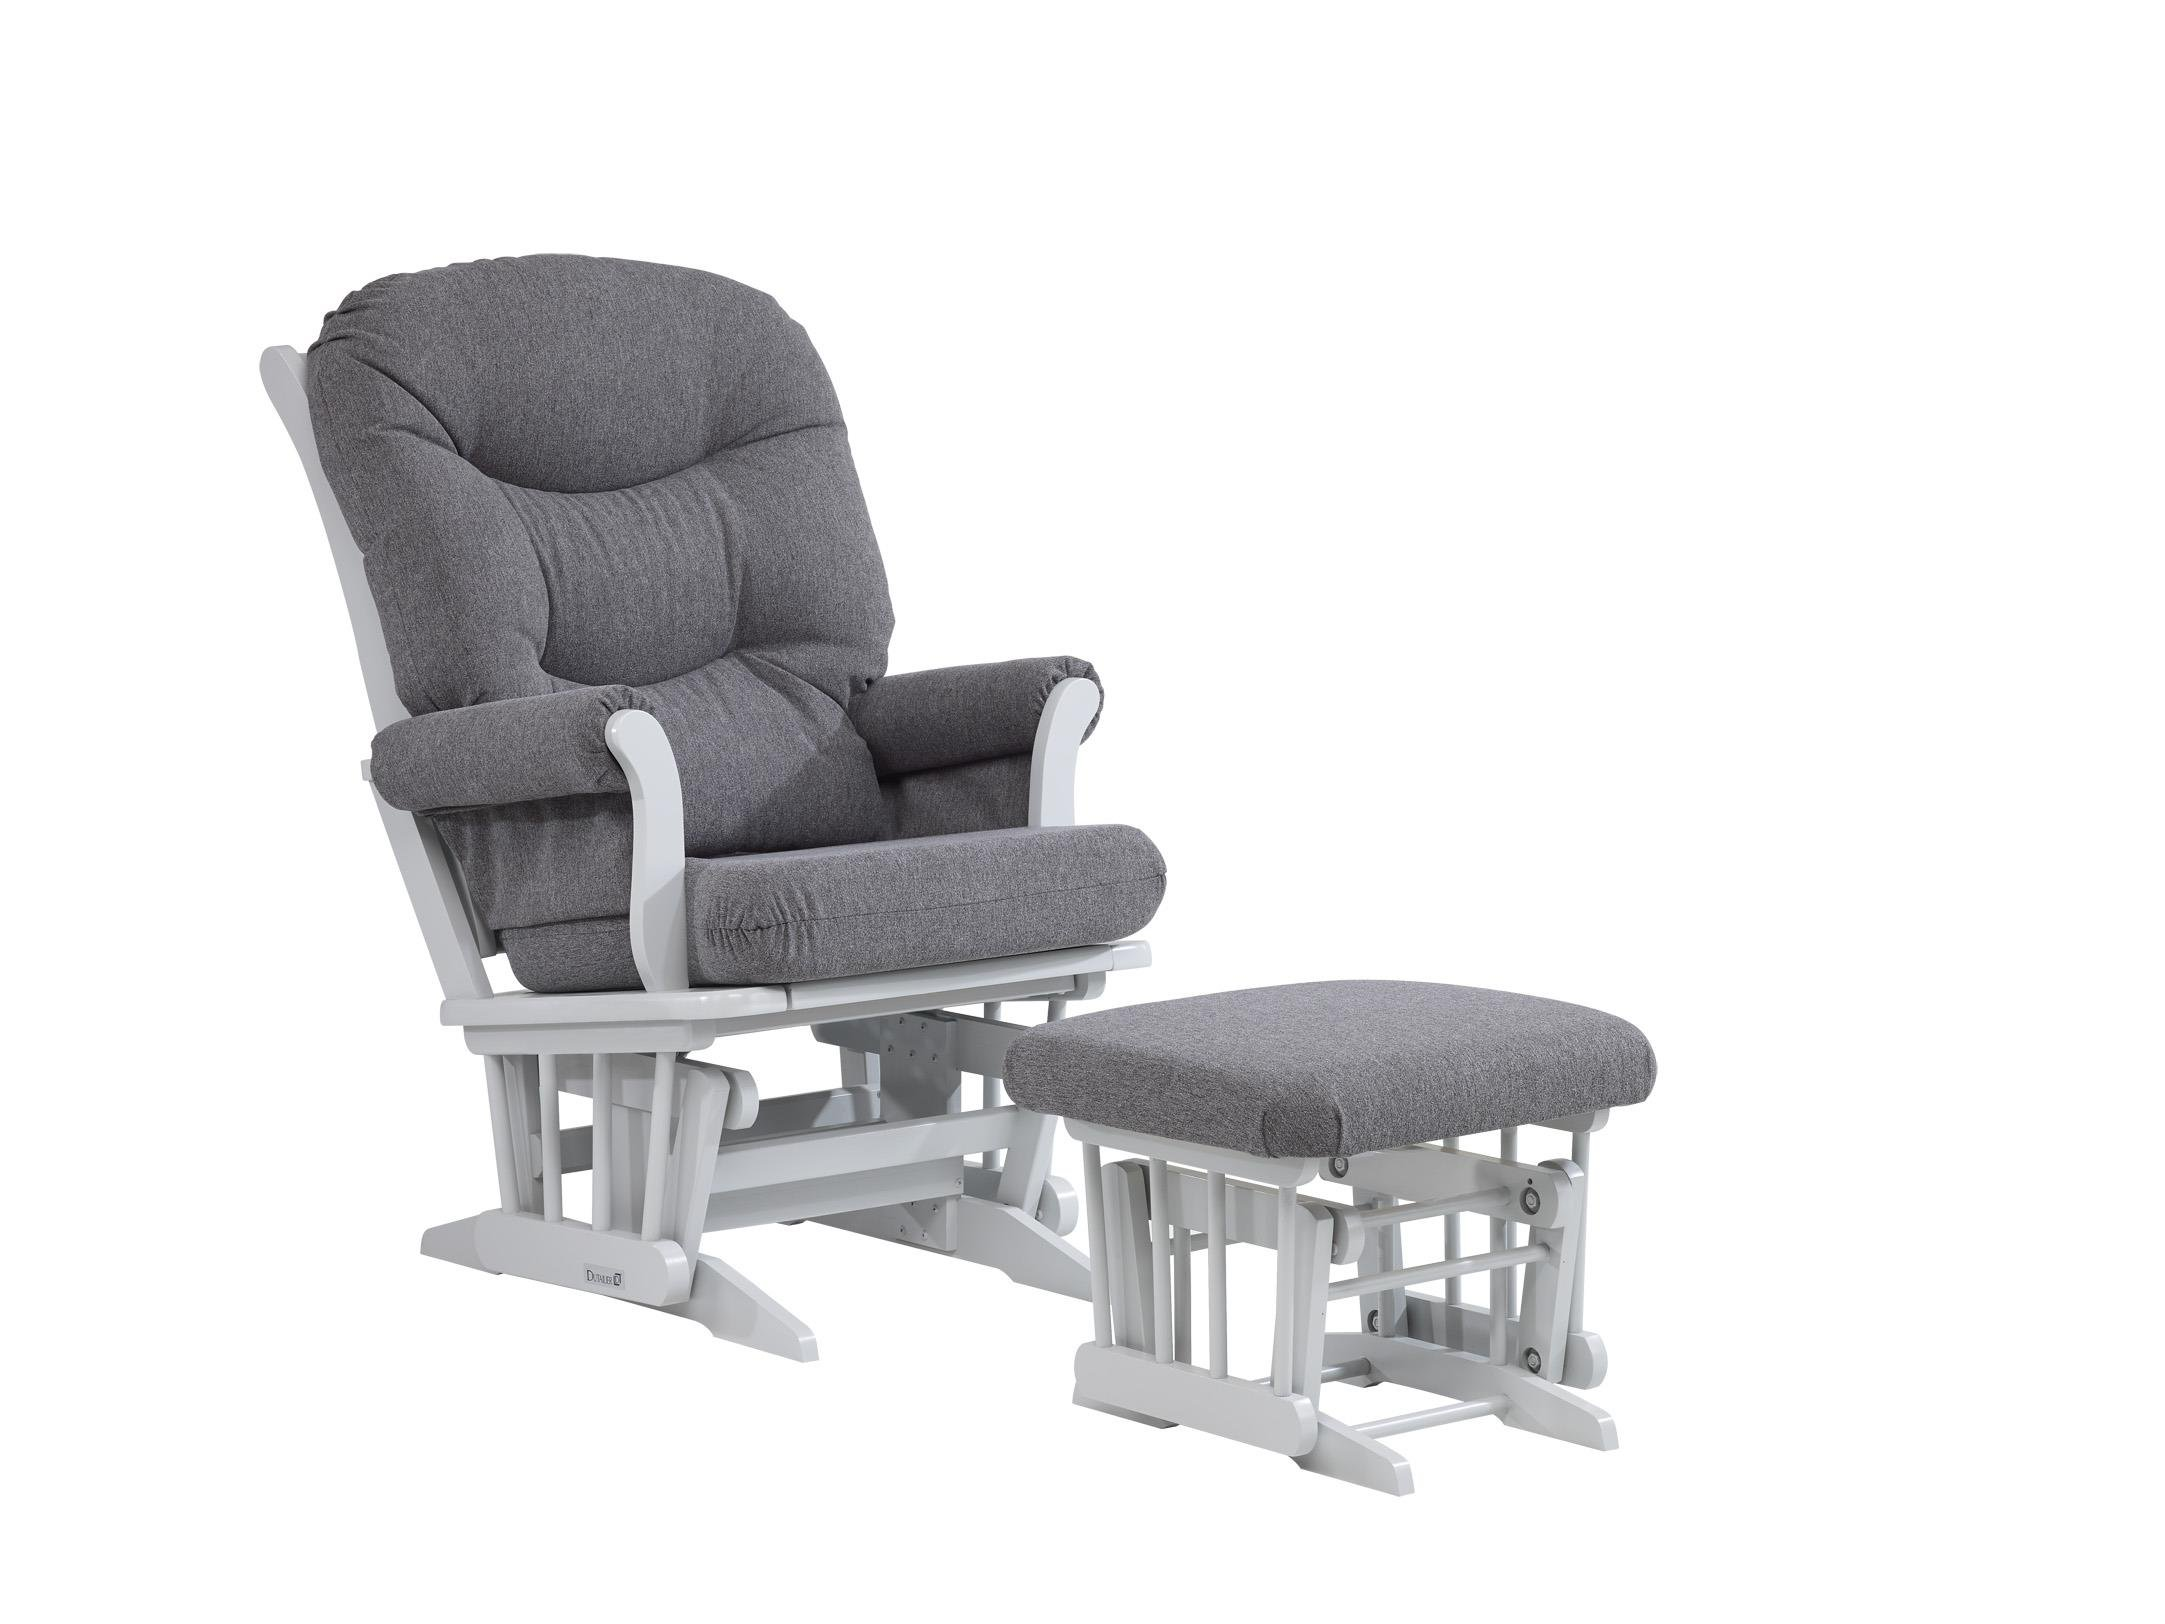 Dutailier SLEIGH 0336 Glider chair with Ottoman included by Dutailier